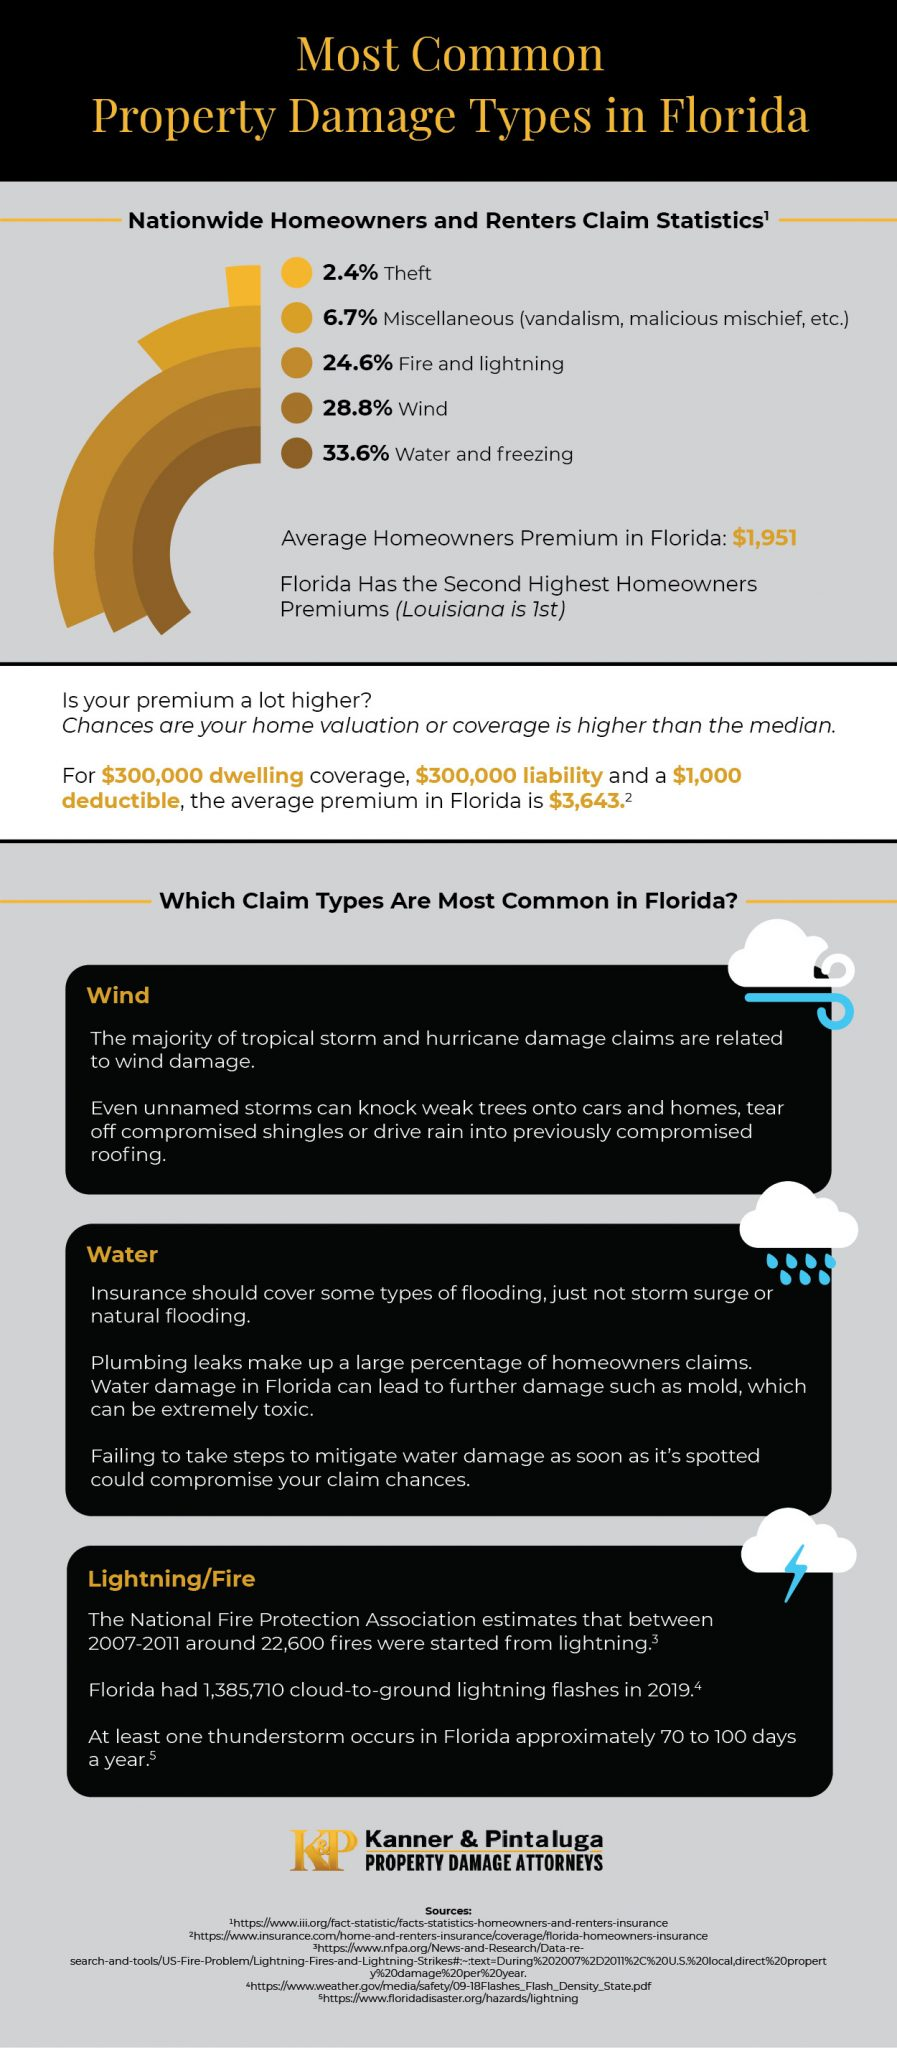 Most Common Property Damage Types in Florida-Kanner and Pintaluga